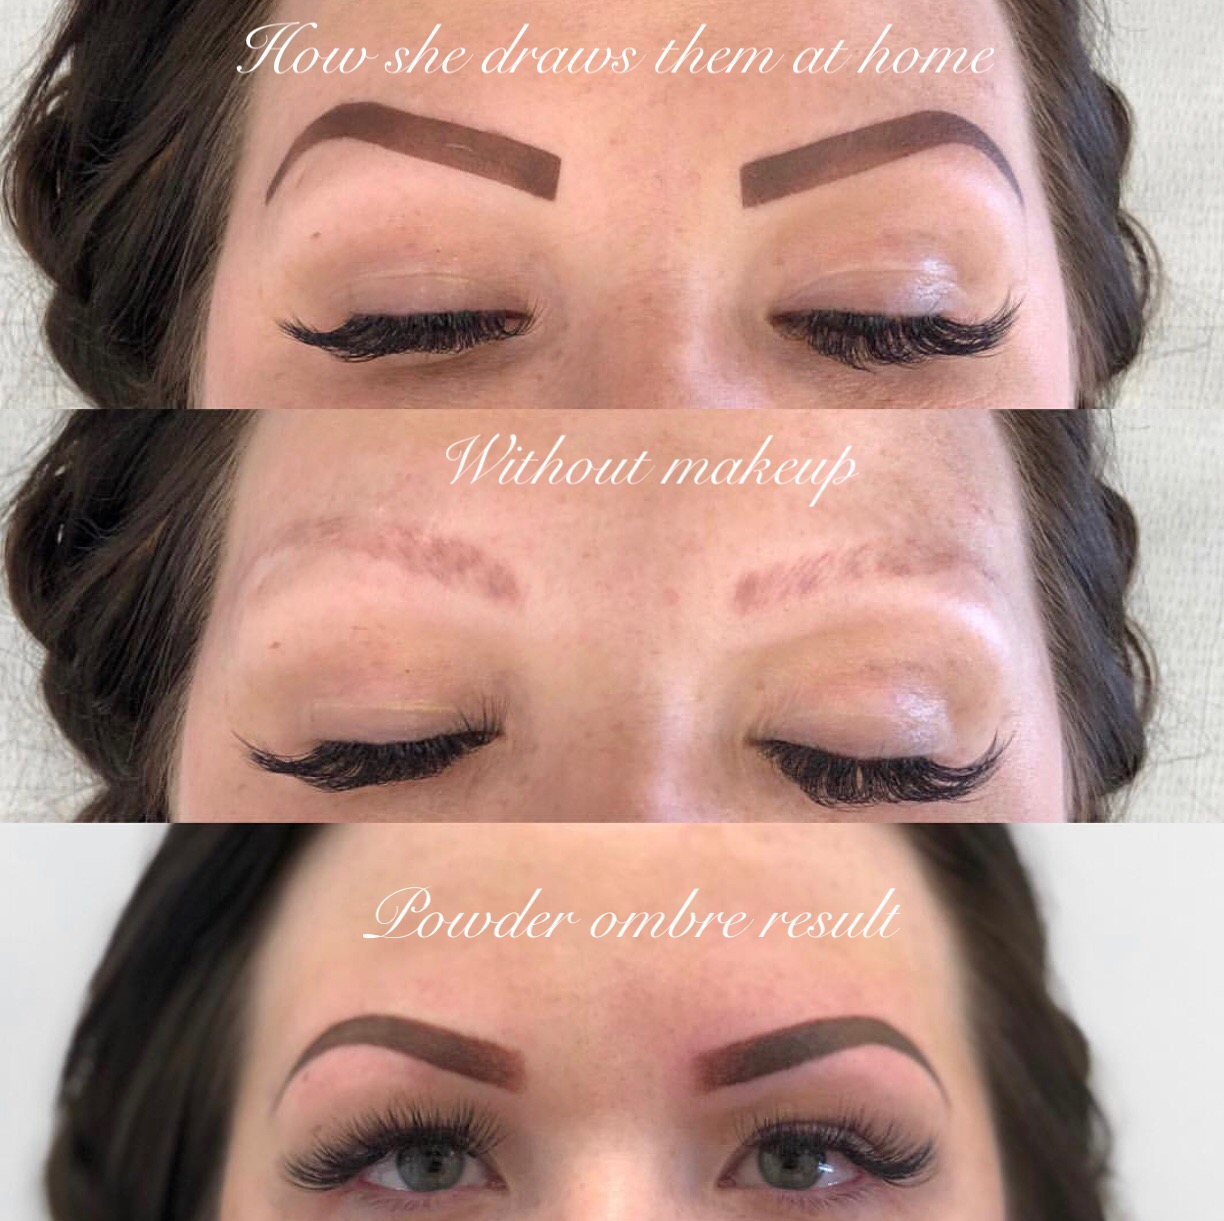 Brow Tattooing Salon Wild Find out important info and pricing for tattoo eyebrows here.tattoo eyebrows are exactly what you need if your natural ones are thin, sparse or they just won't grow back. brow tattooing salon wild